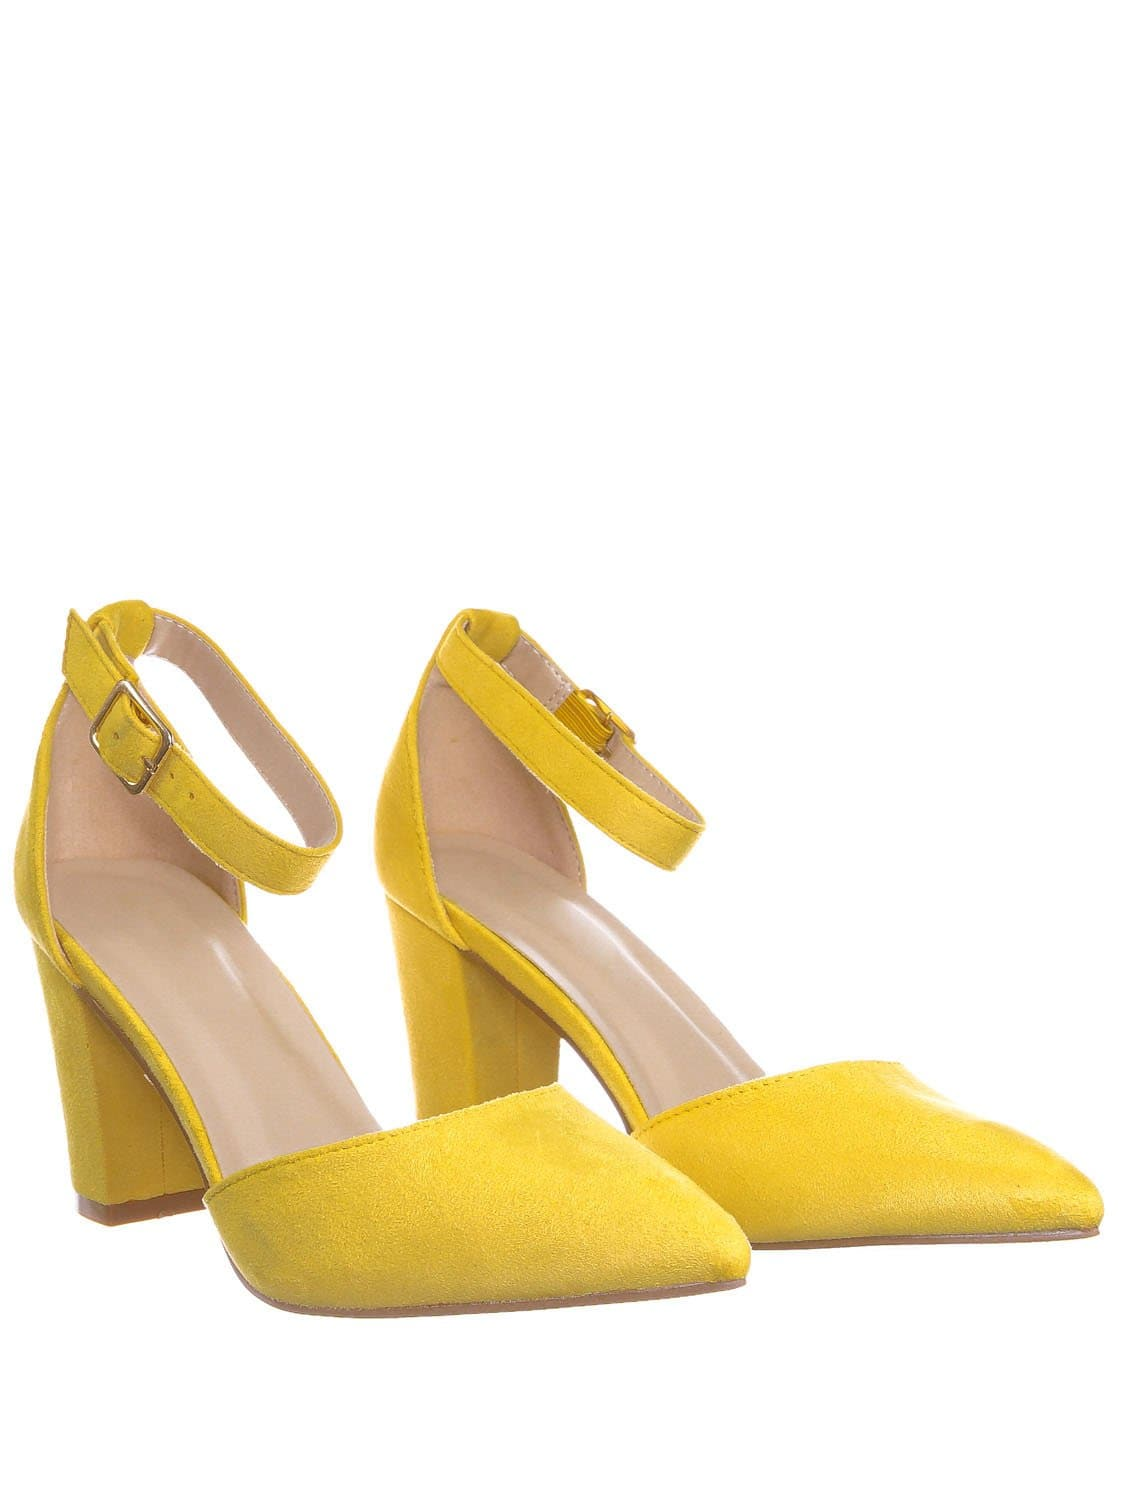 Songful6 Mustard Retro Pointed Toe d'Orsay Chunky Block Heel Pump - Women Open Shank